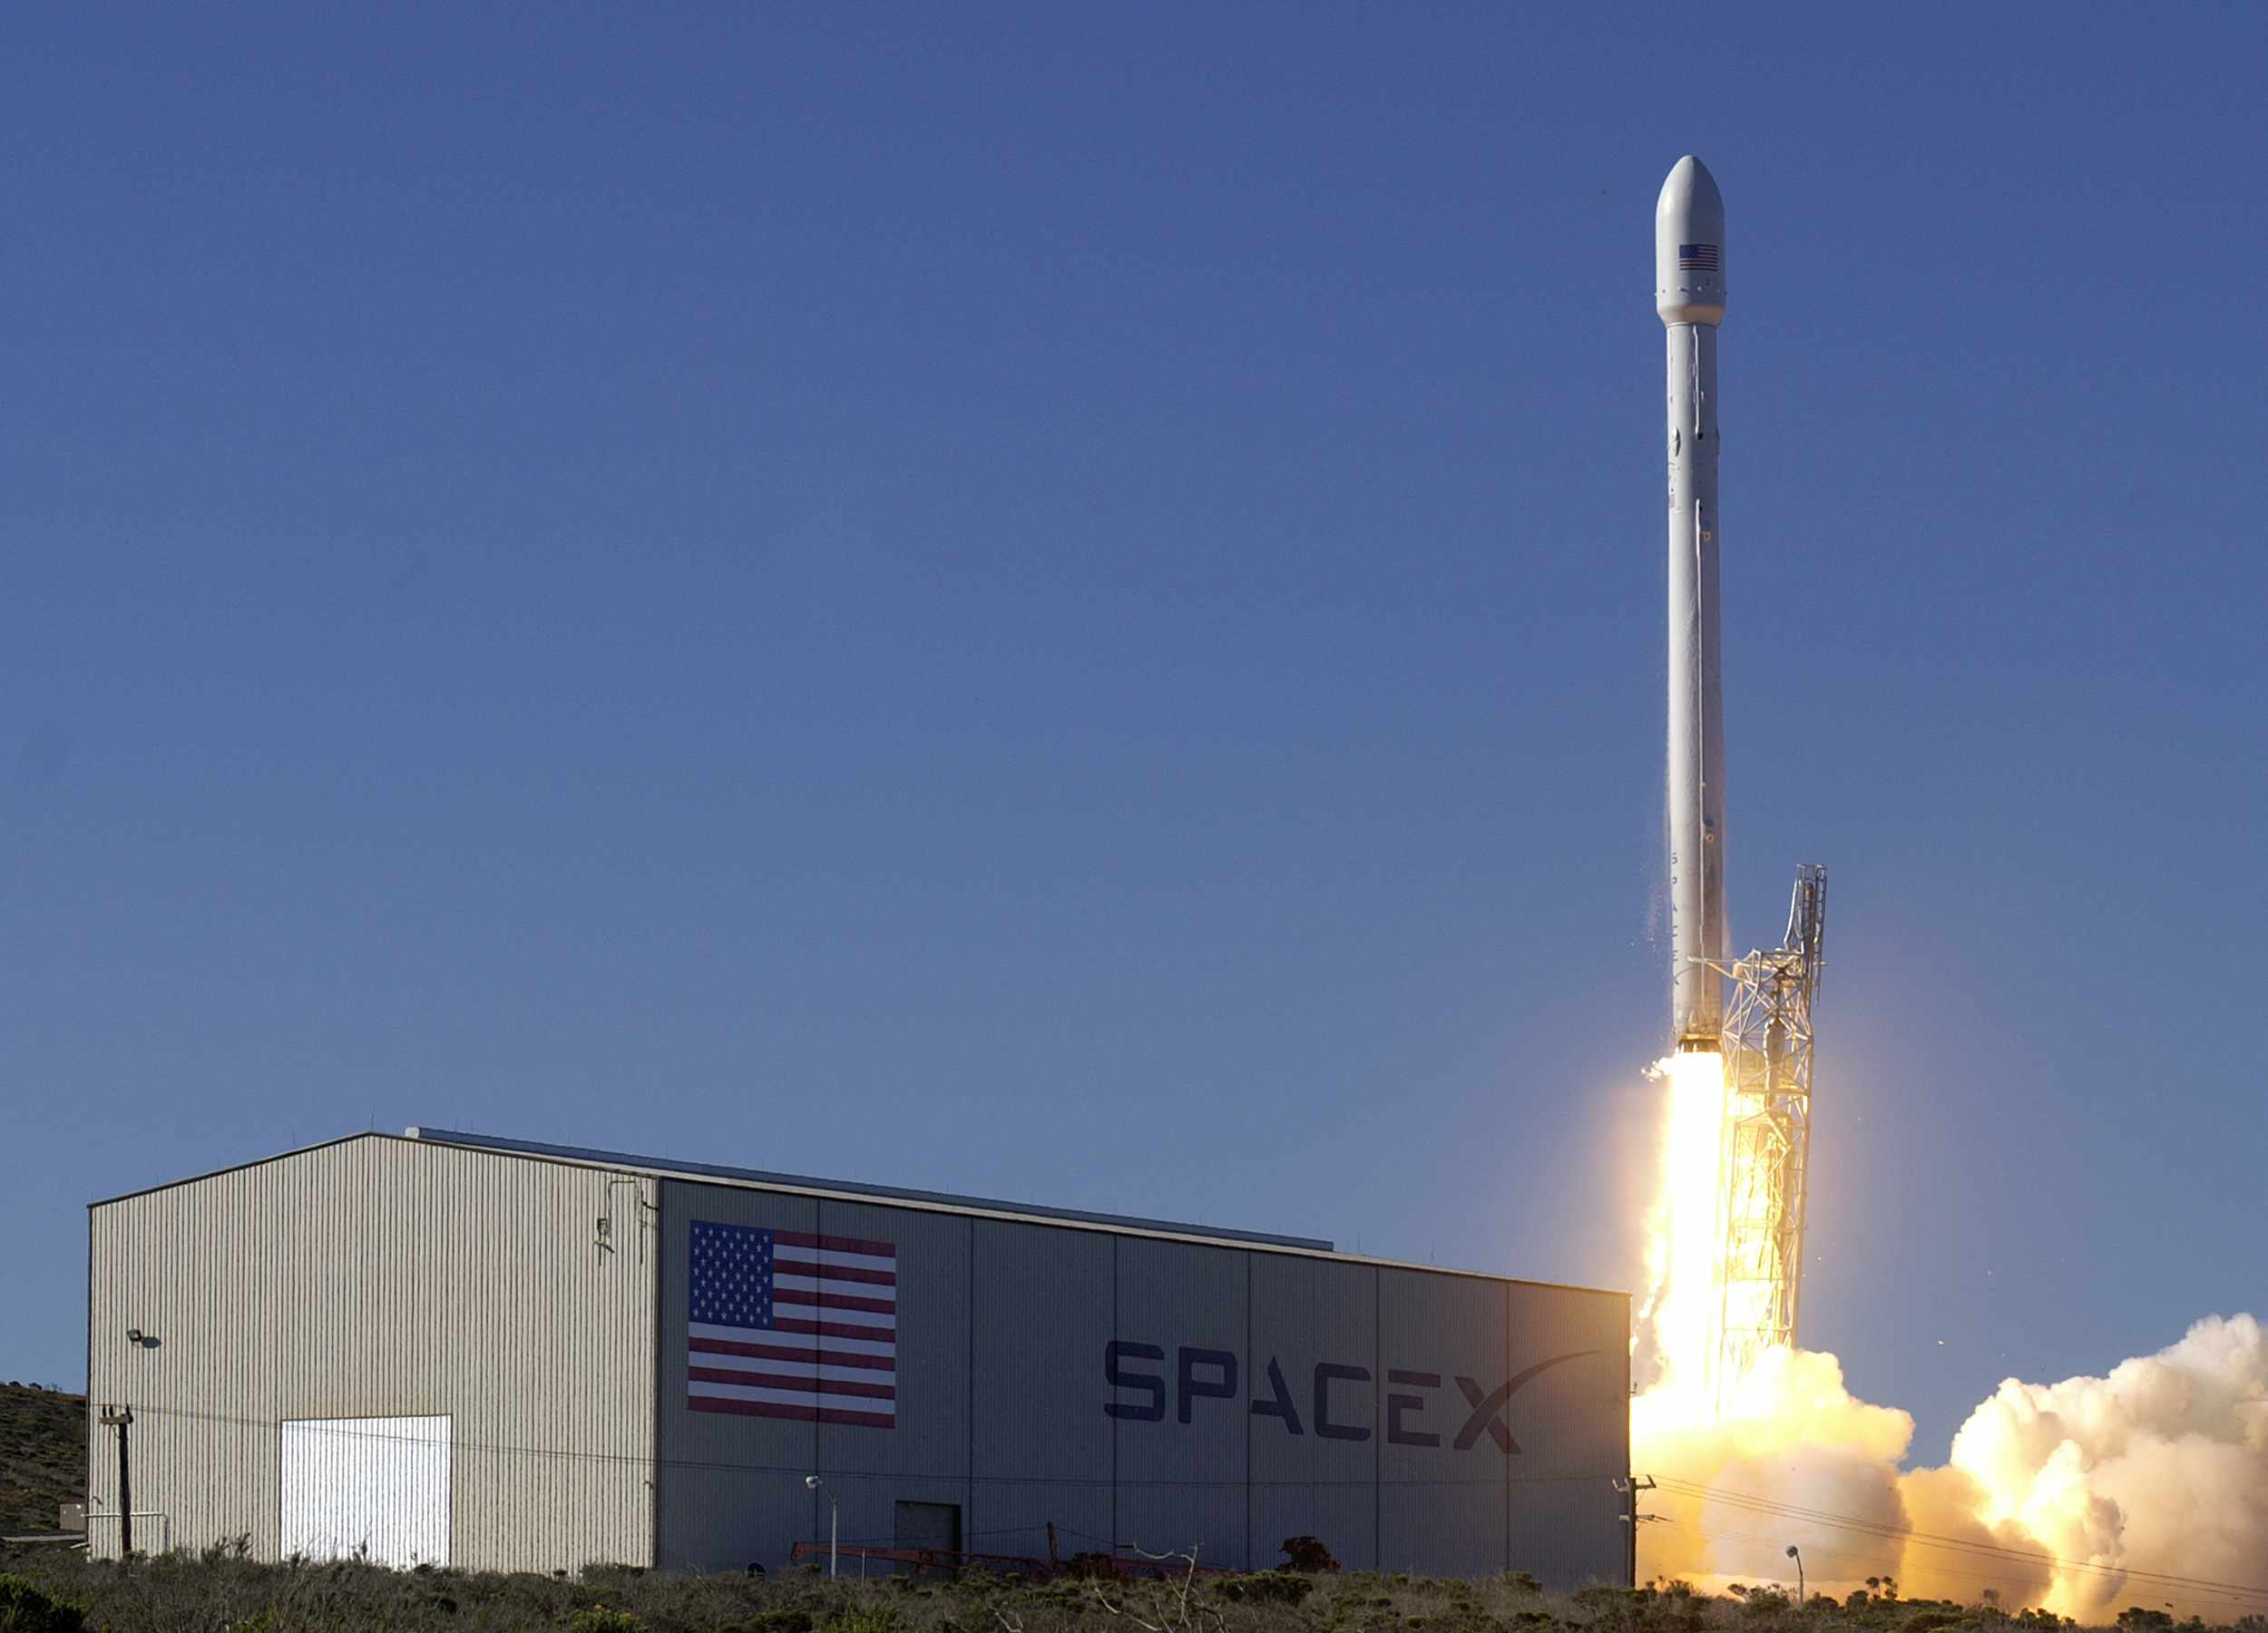 SpaceX Falcon 9 rocket launches with satellite attached